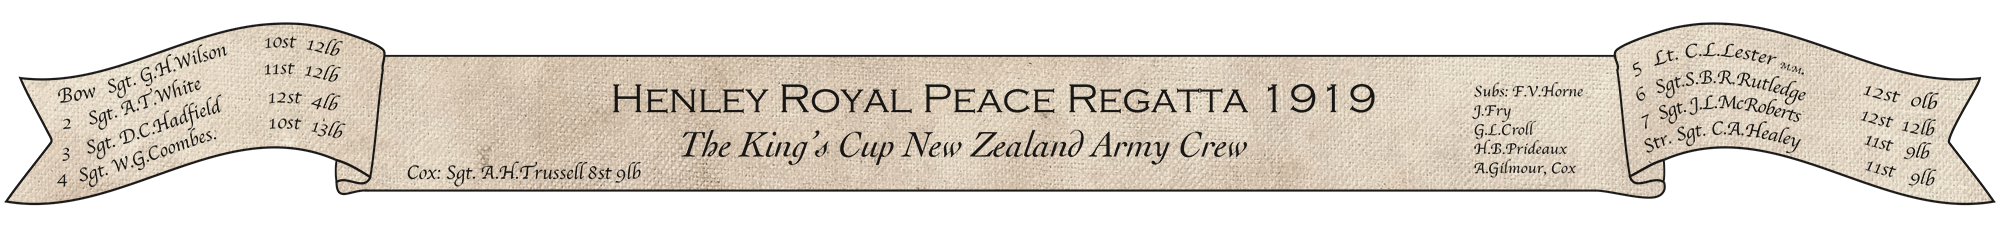 New-Zealand-Army-Crew-1919.png